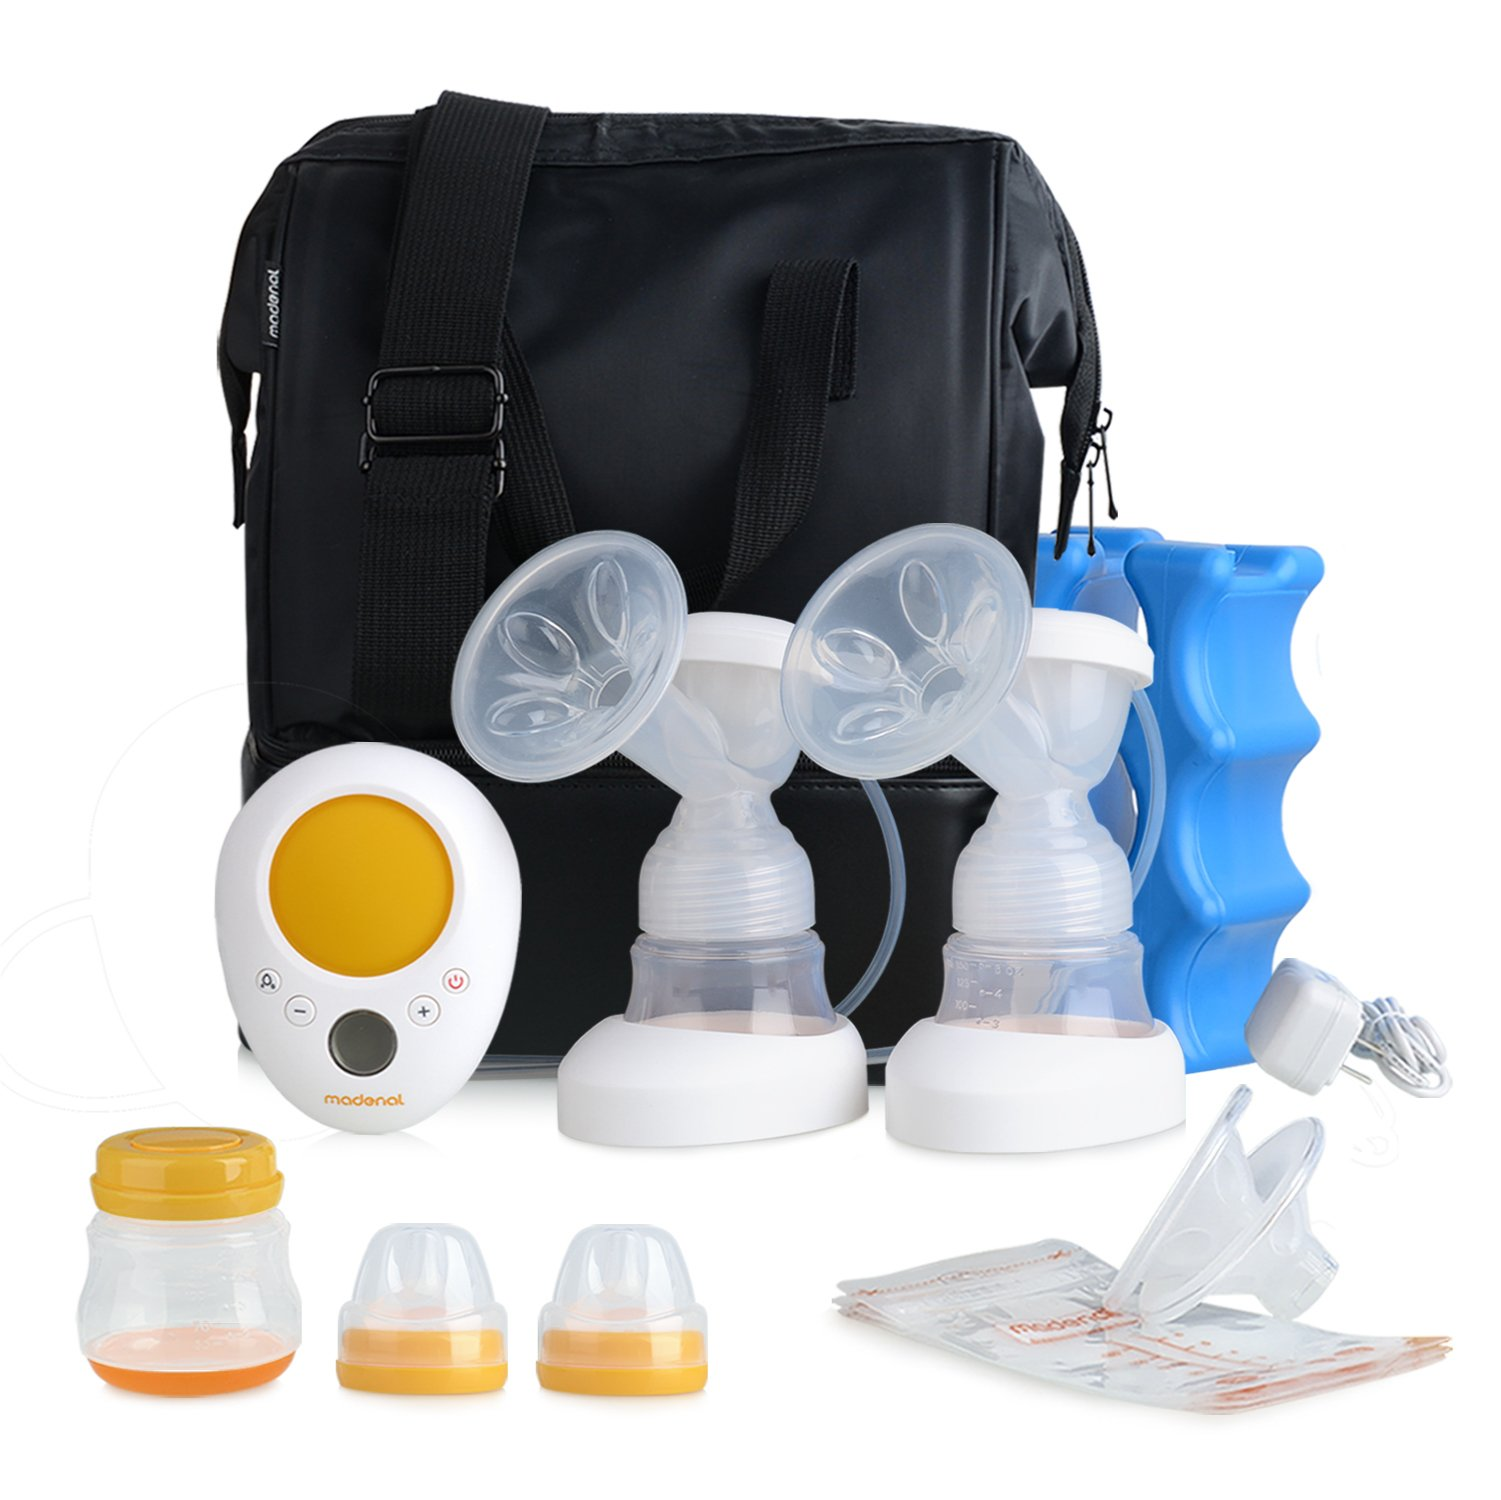 MADENAL Double Electric Breast Pump Travel Set, Ice Pack, Breastmilk Storage Bags, Super Quiet, Effective and Comfortable with On the Go Cooler Bag by MADENAL (Image #1)